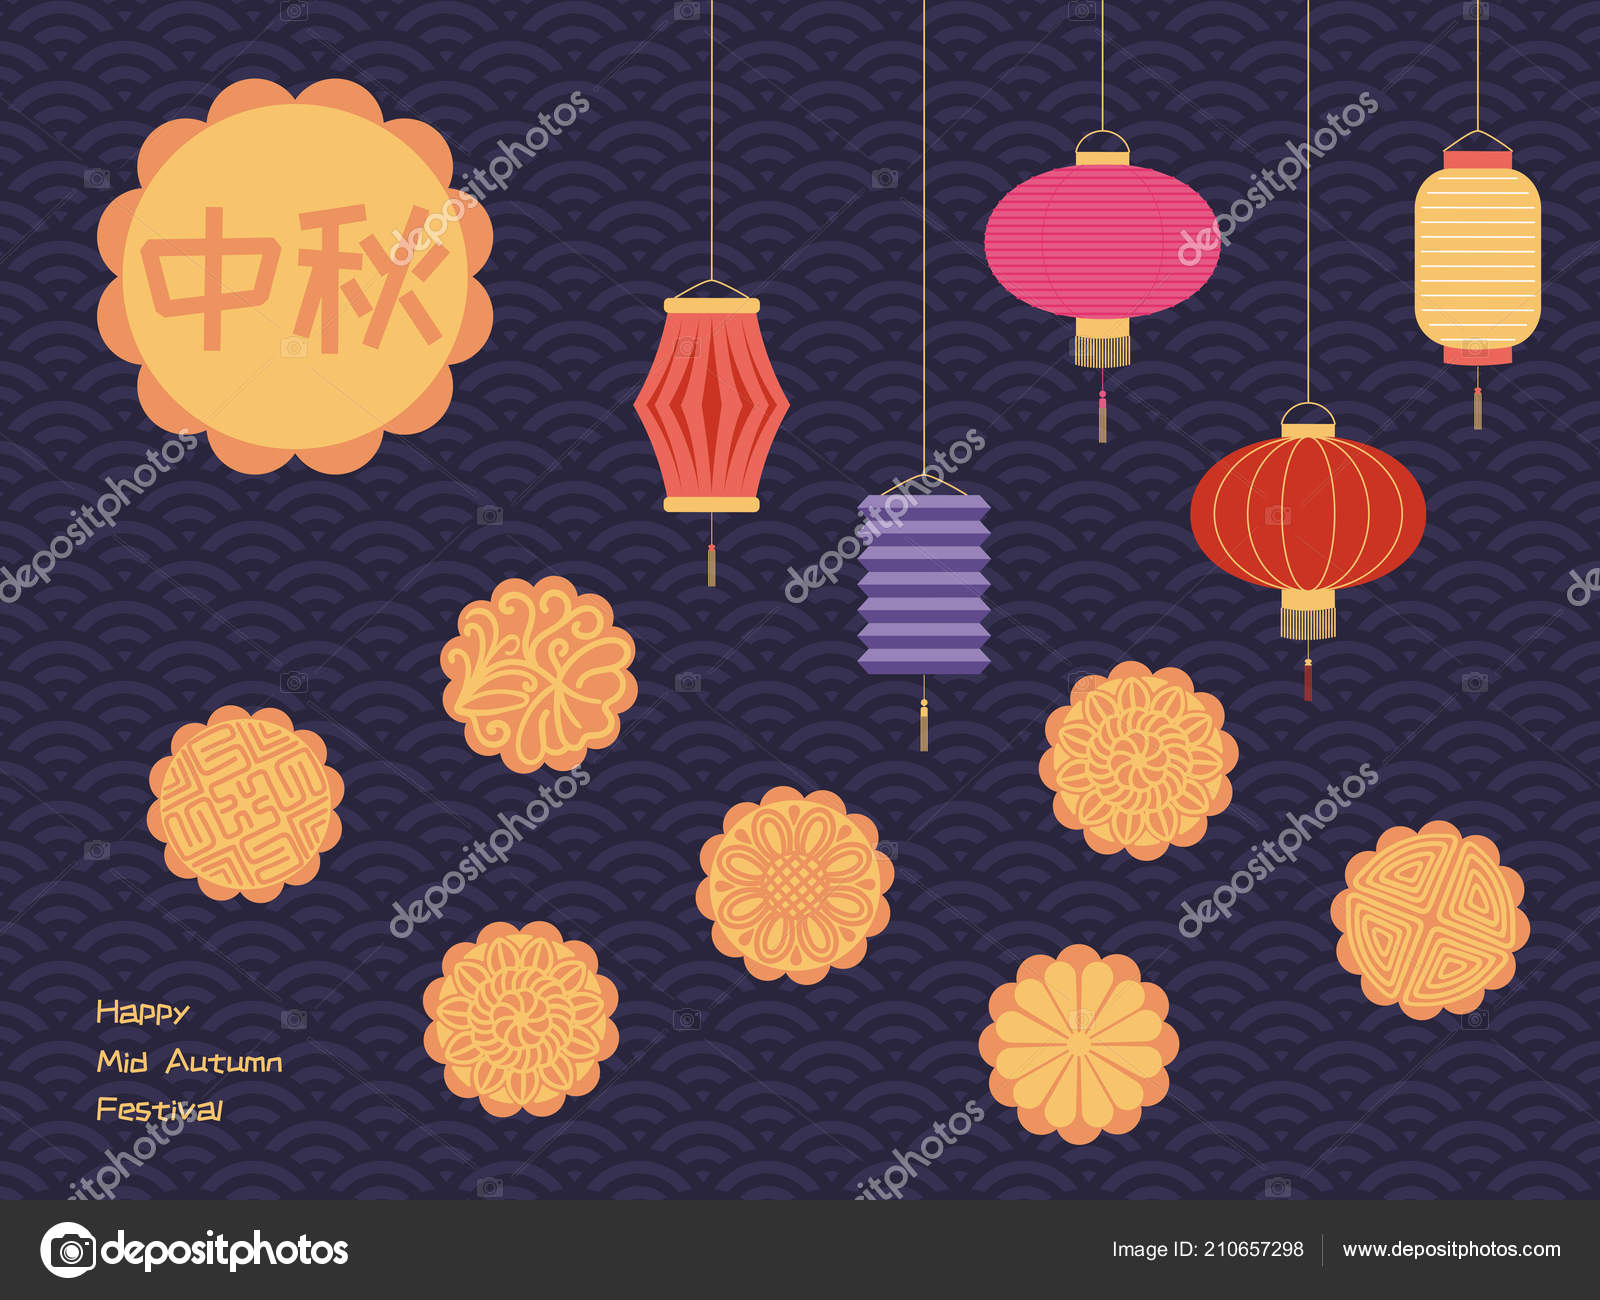 Mid Autumn Greeting Card Full Moon Lanterns Moon Cakes Chinese